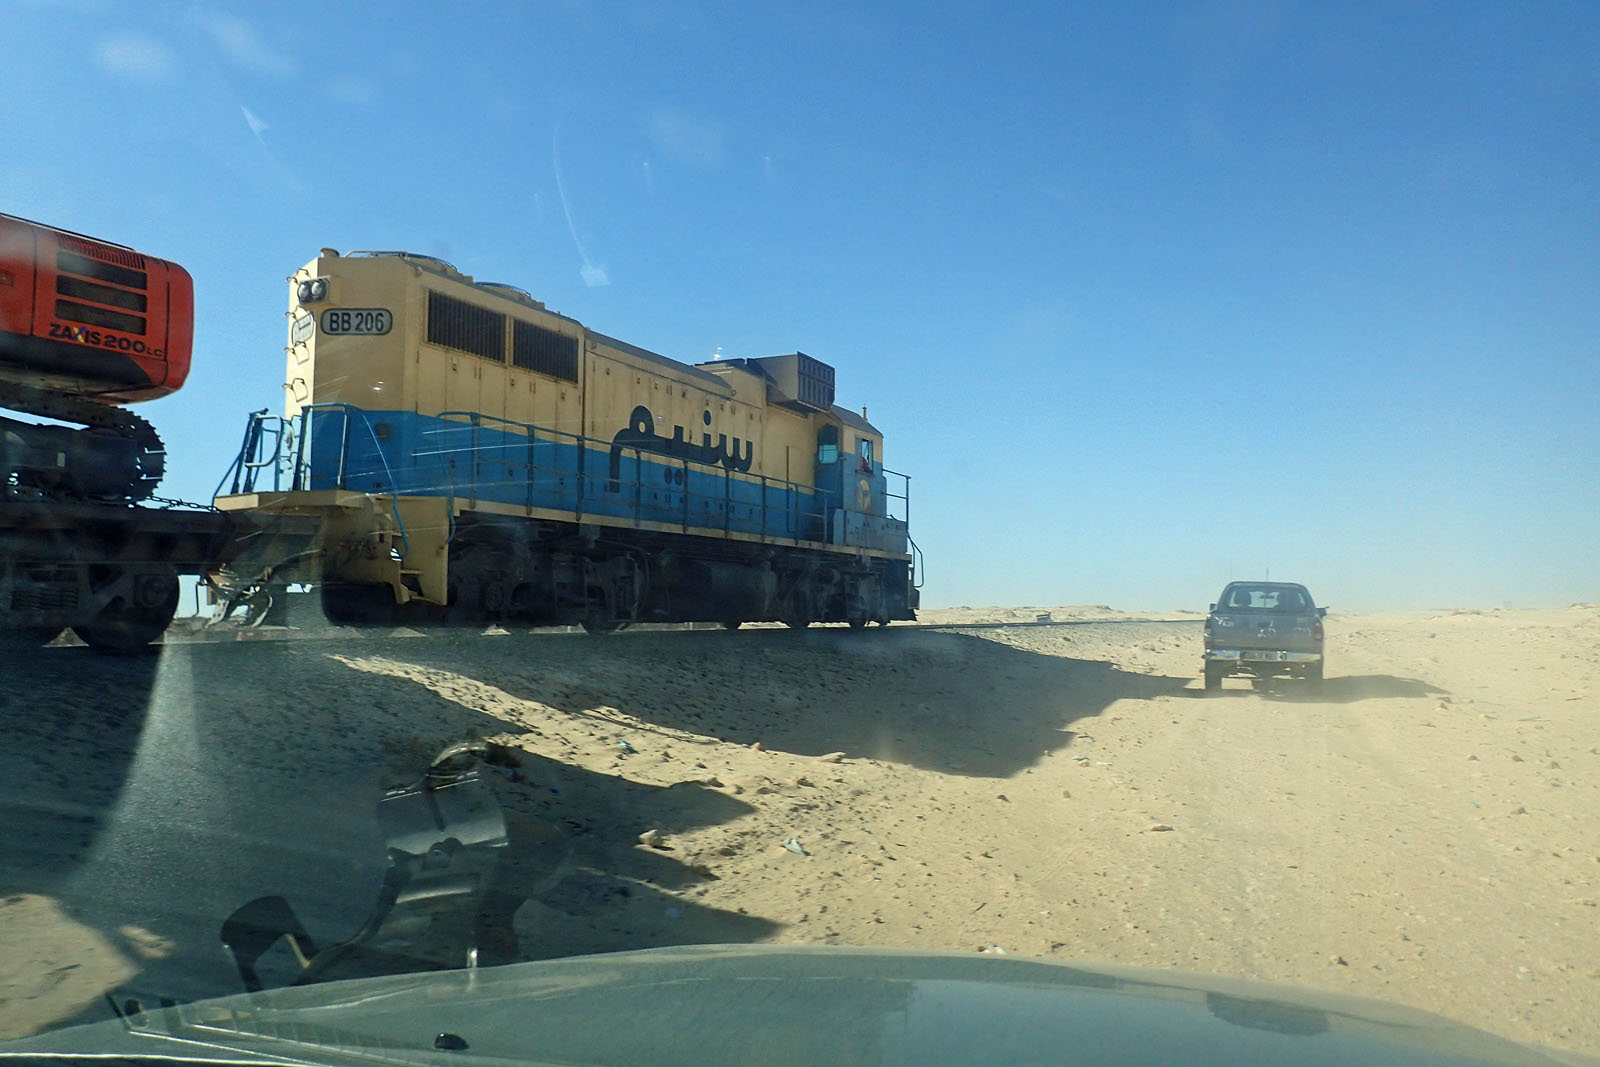 Riding the desert train